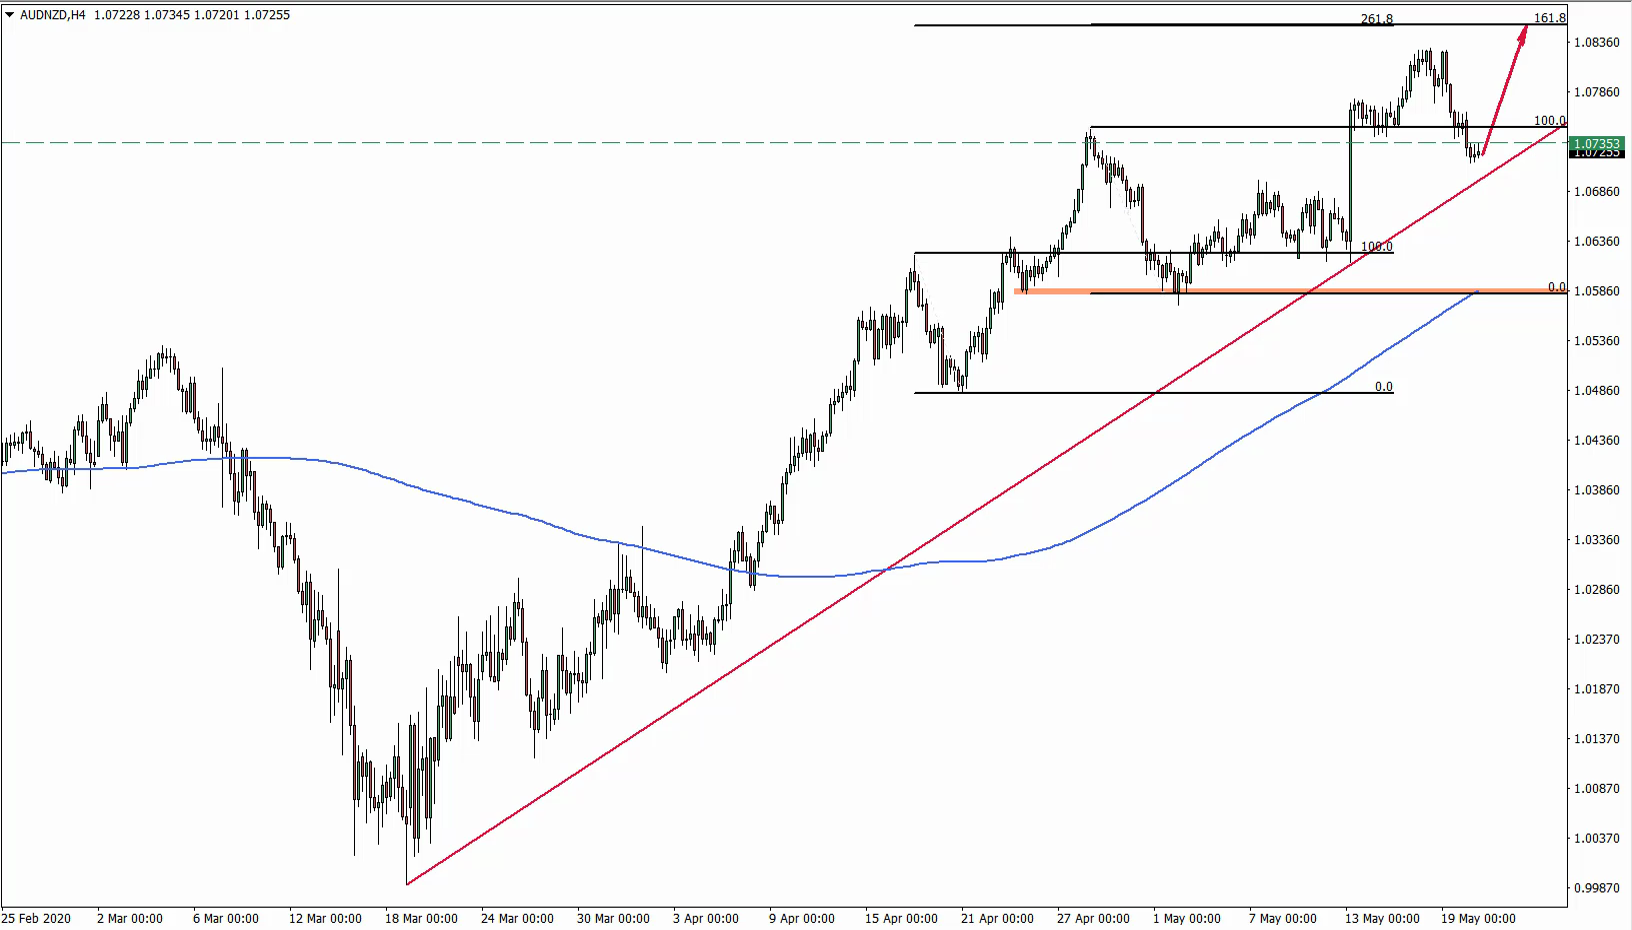 AUDNZD Buy Trade Idea May 20th 2020